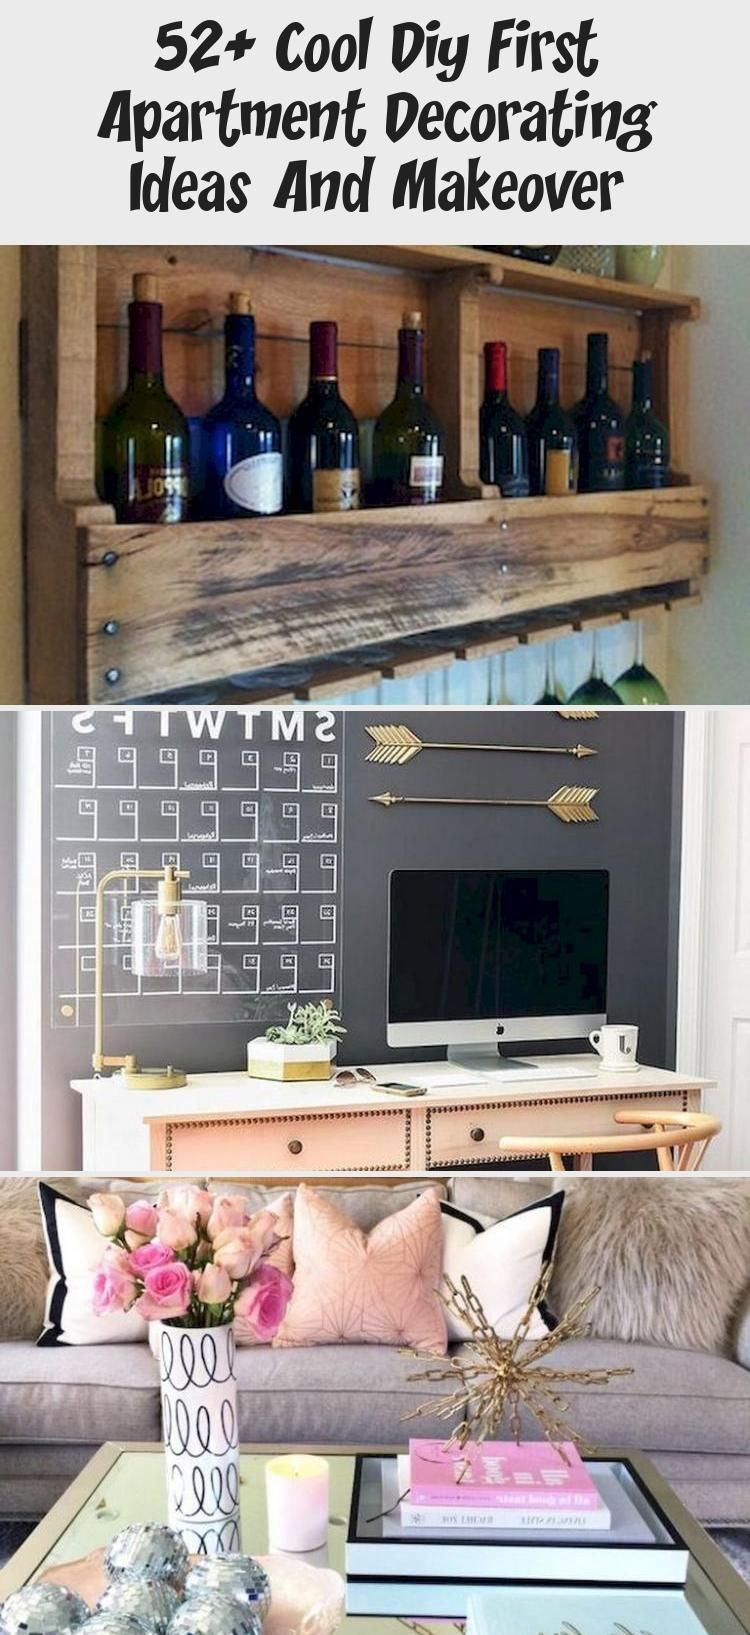 52 Cool Diy First Apartment Decorating Ideas And Makeover First